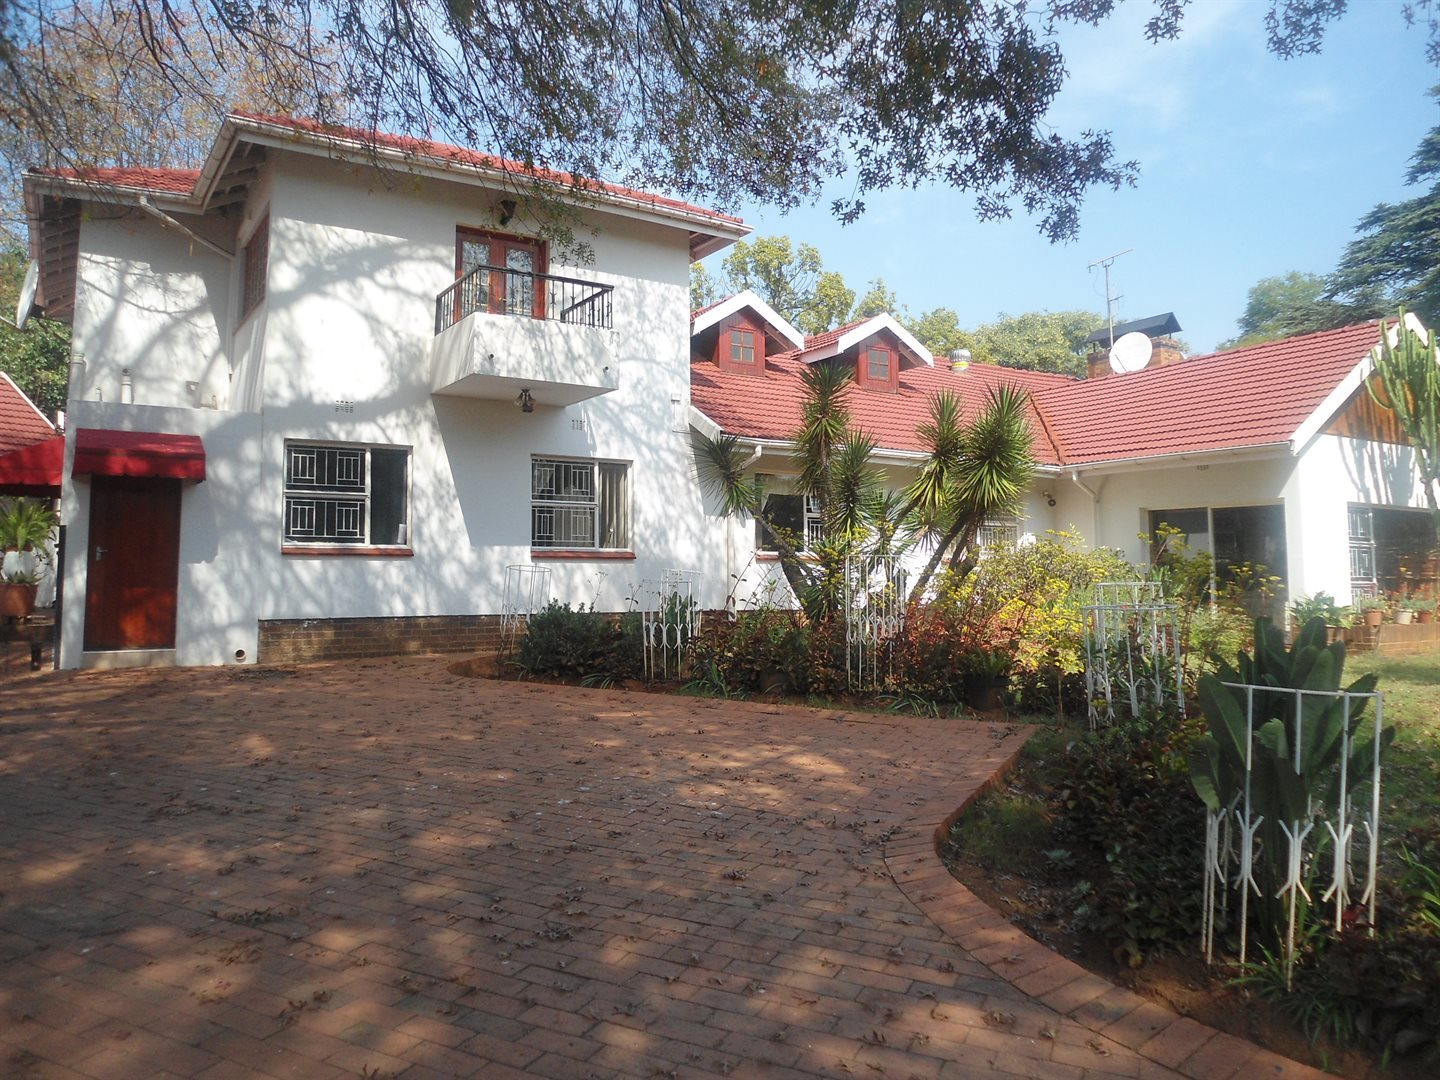 Johannesburg, Johannesburg Central Property  | Houses For Sale Johannesburg Central, Johannesburg Central, House 7 bedrooms property for sale Price:3,300,000